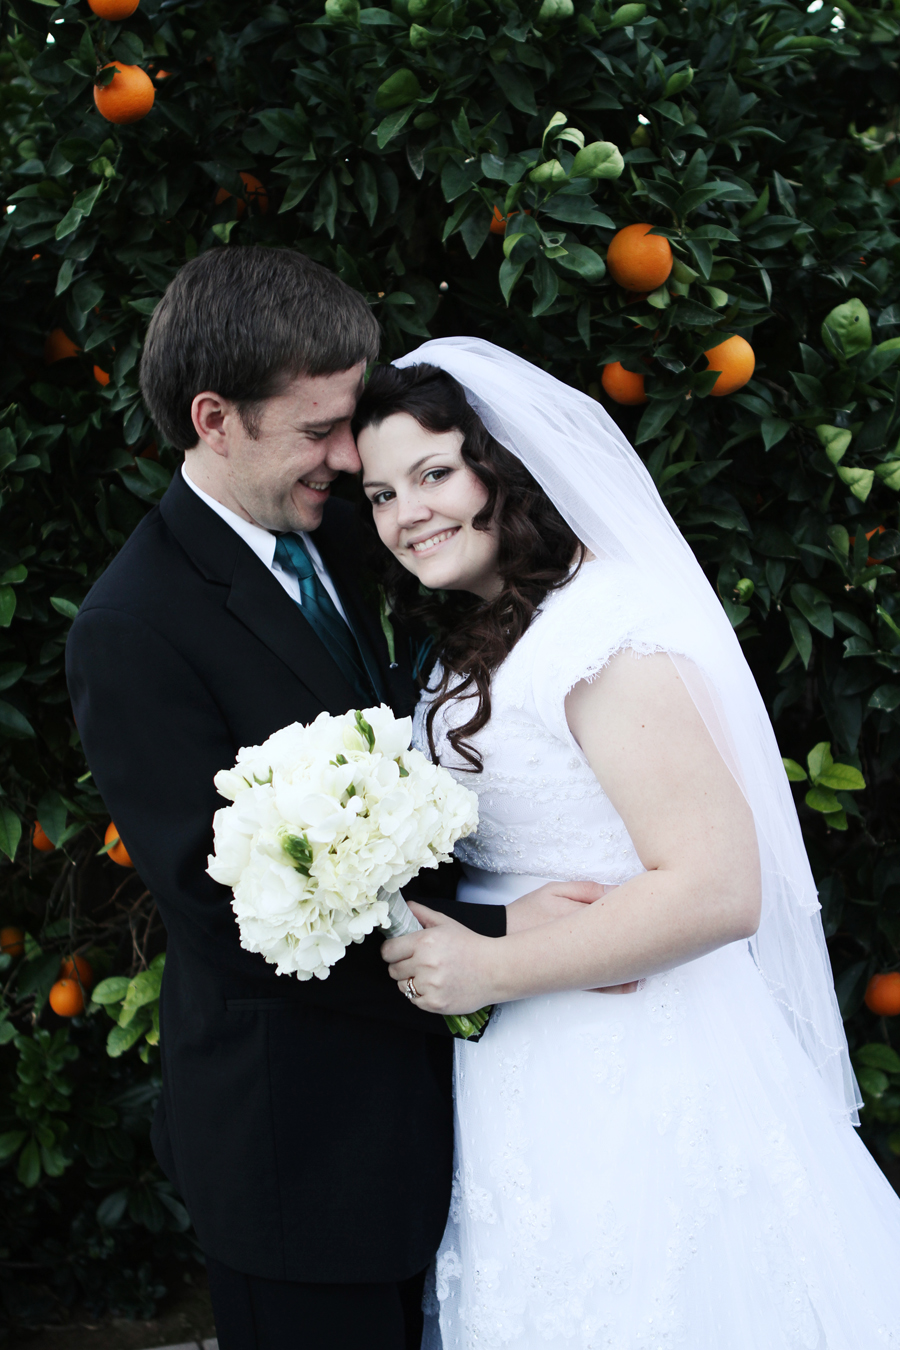 The Best Newlywed Financial Advice We Can Give